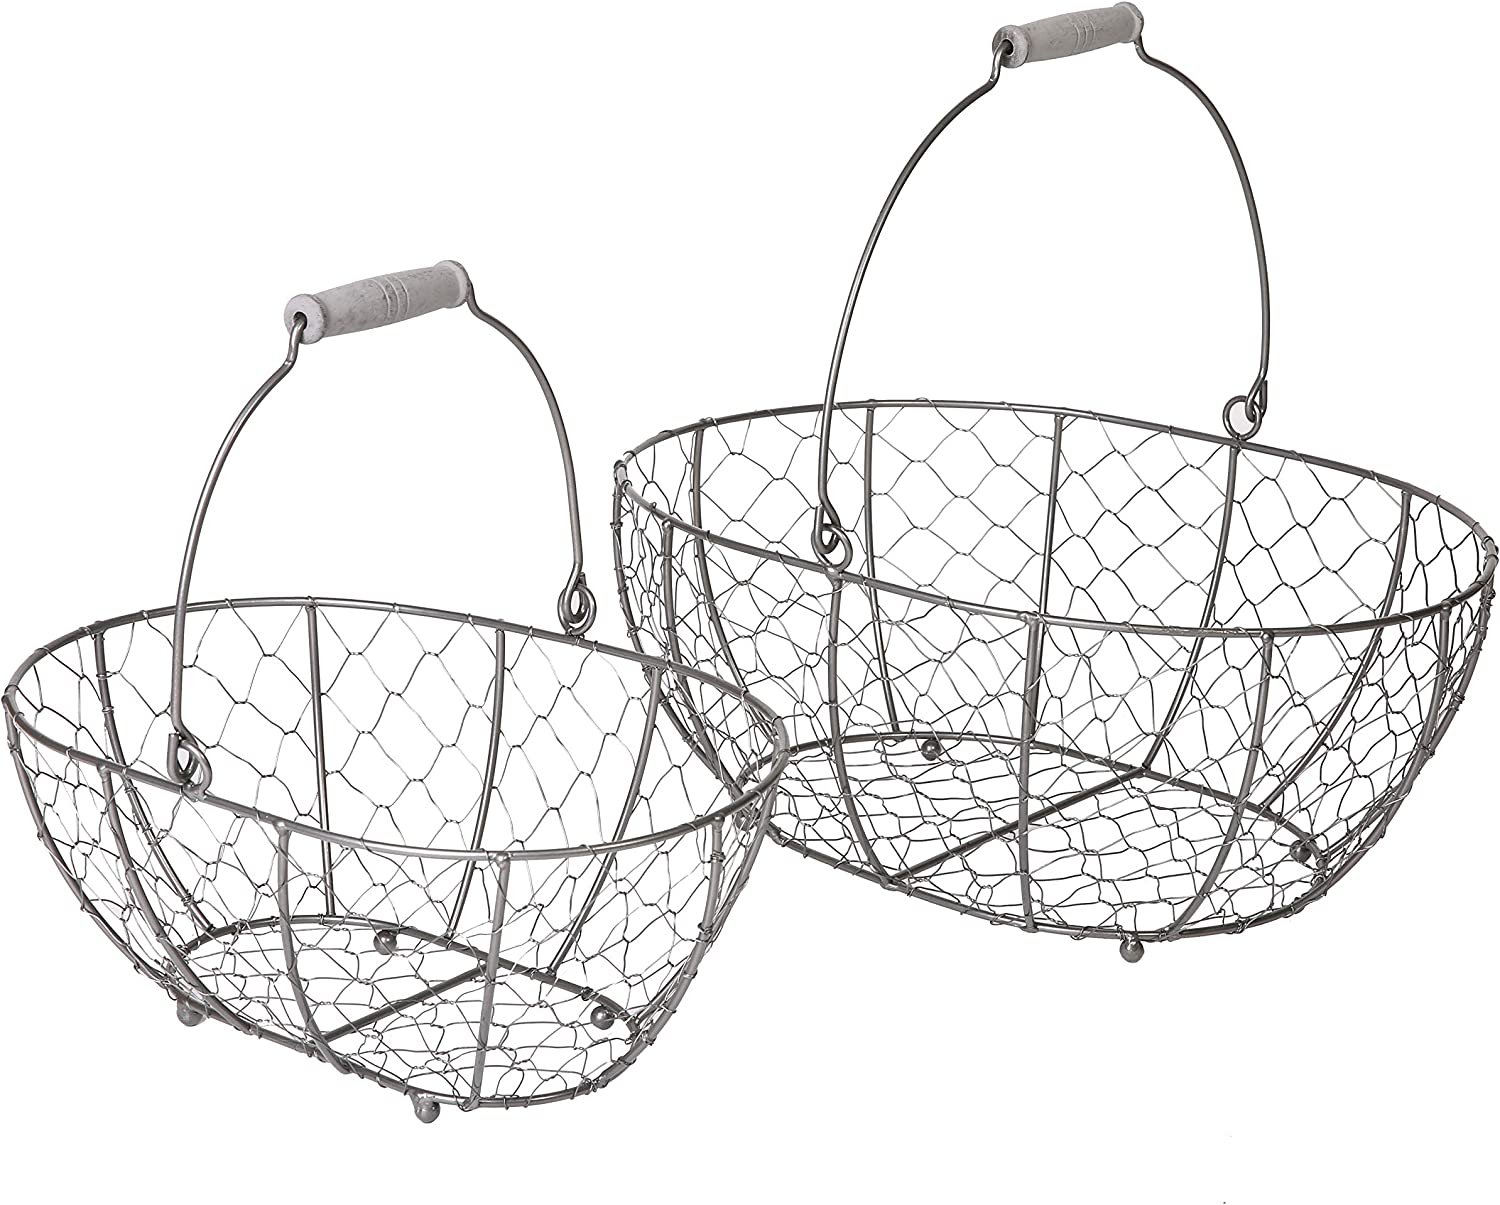 SLPR Metal Chicken Wire Basket Storage with Handle (Grey, Set of 2) | Farmhouse Decorative Storage Boxes for Shelves